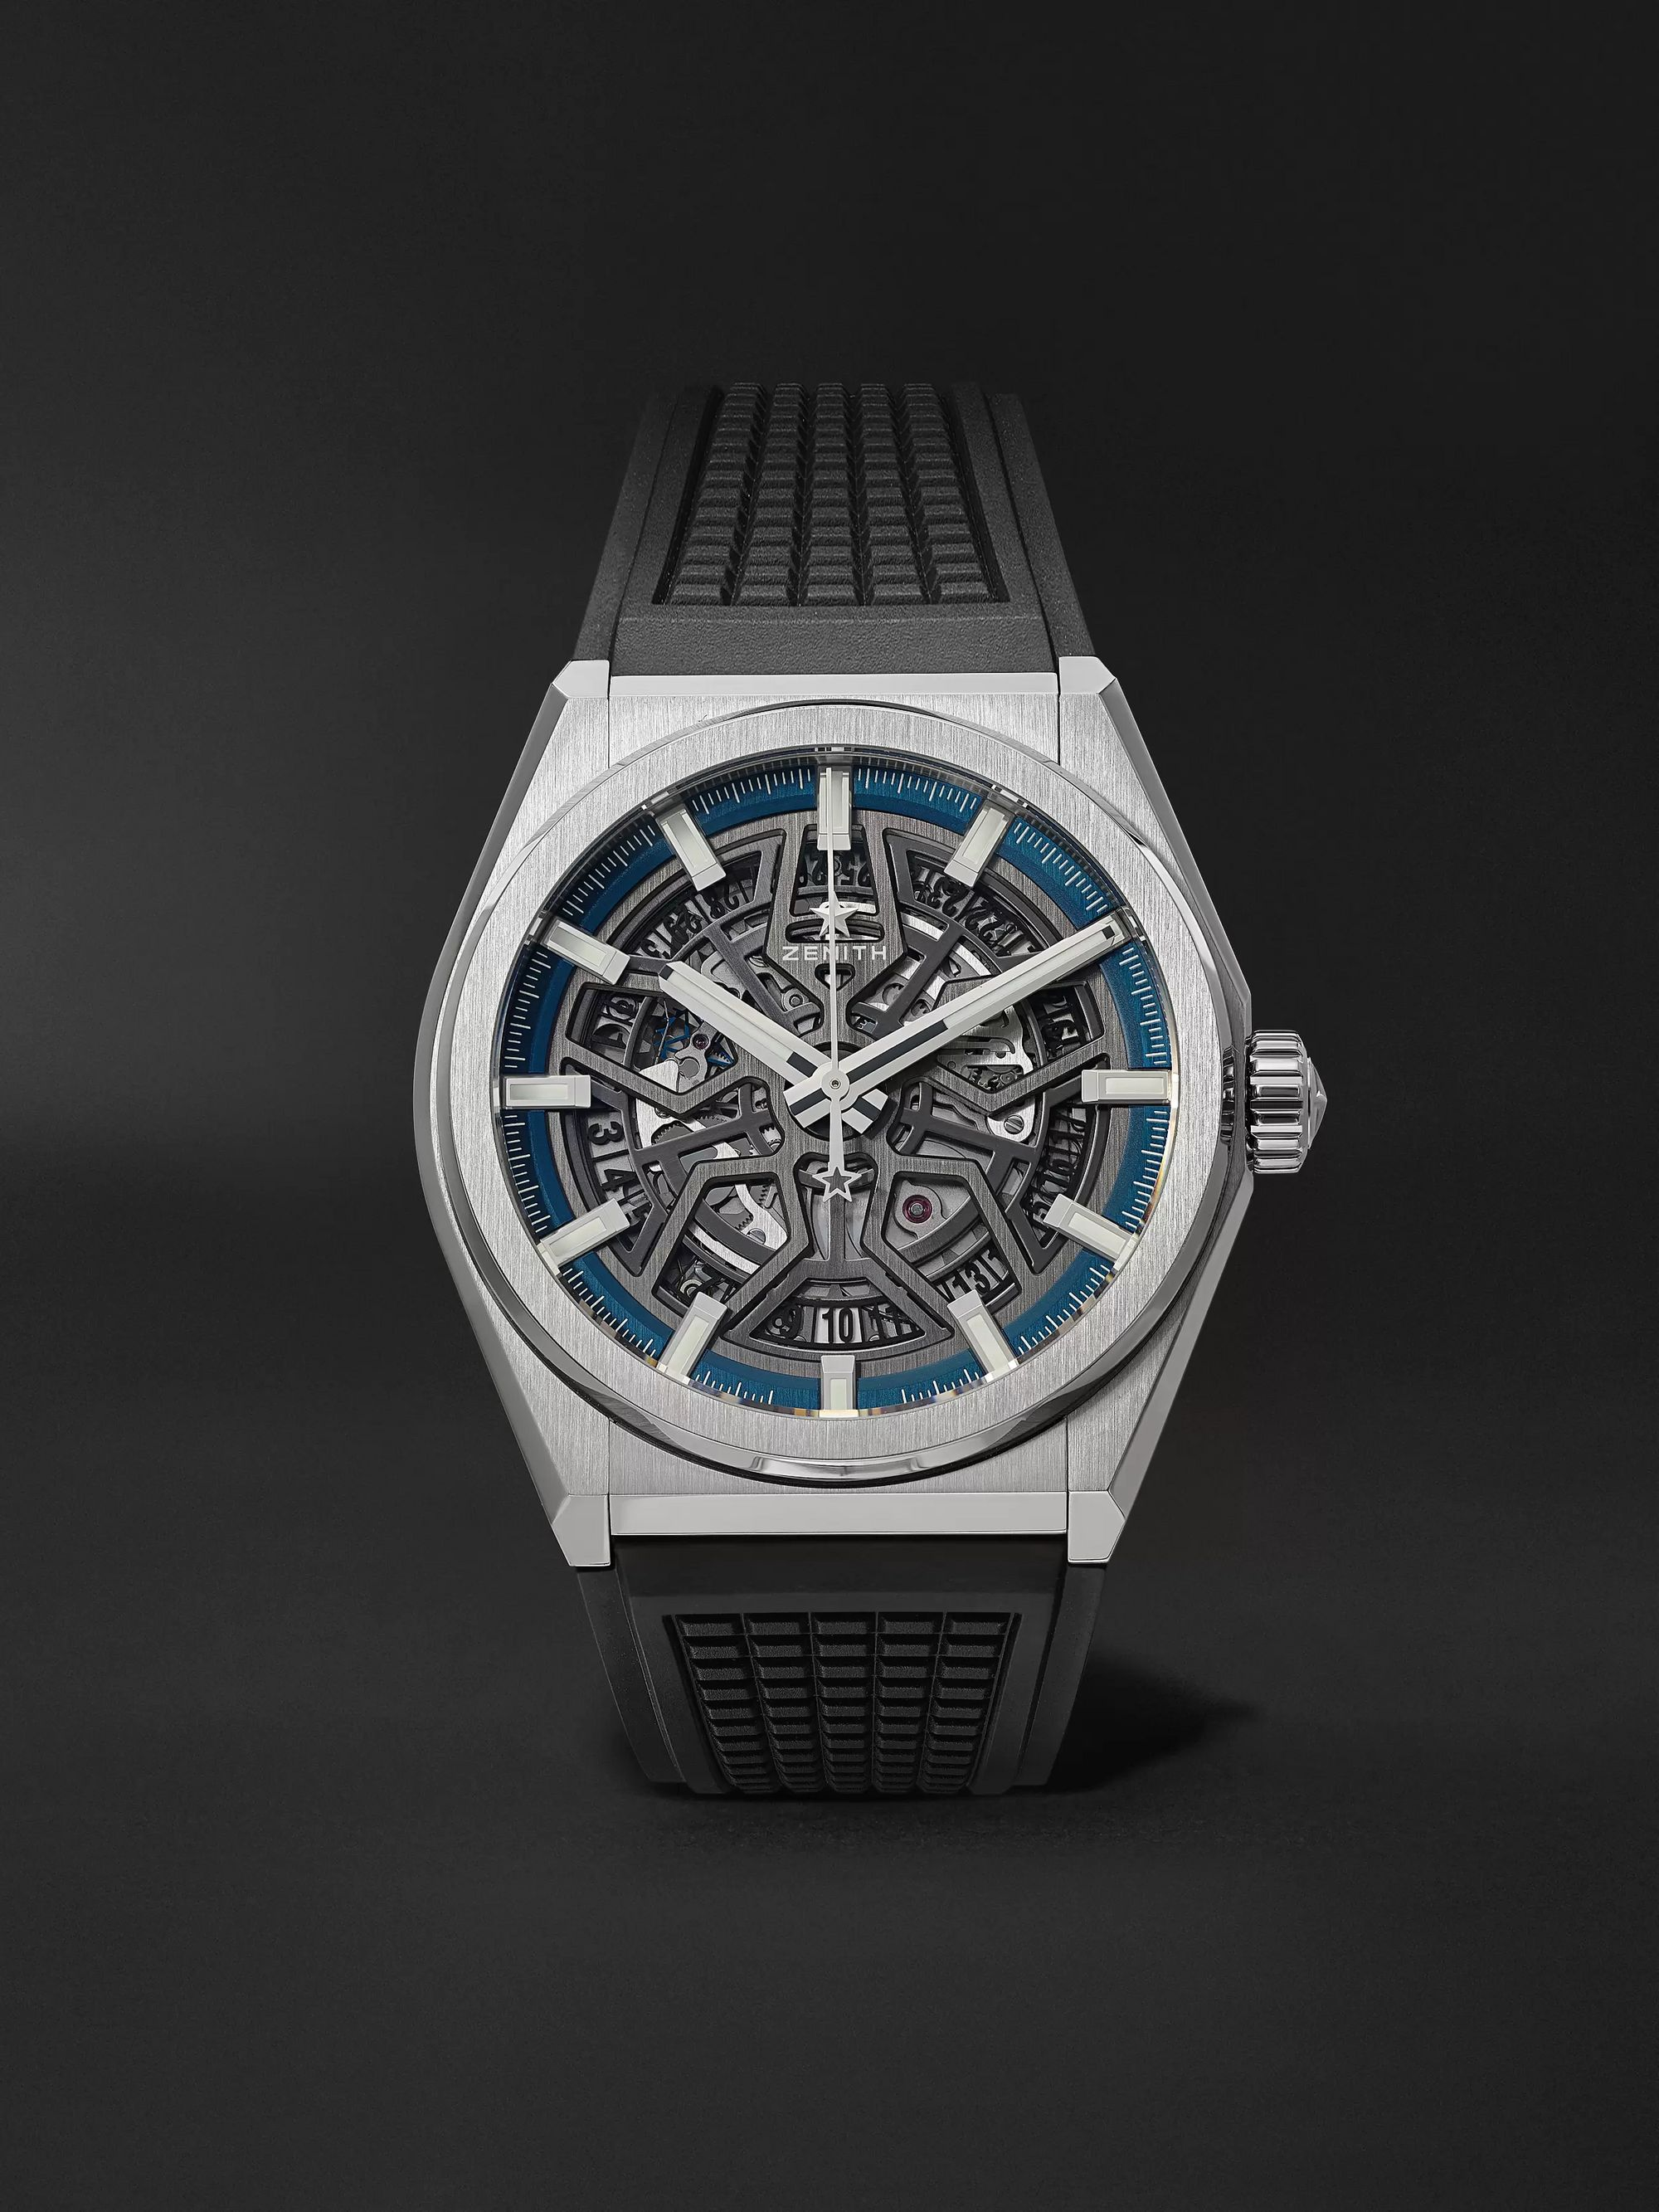 Defy Classic Automatic Skeleton 41mm Brushed Titanium And Rubber Watch, Ref. No. 95.9000.670/78.R782 by Zenith